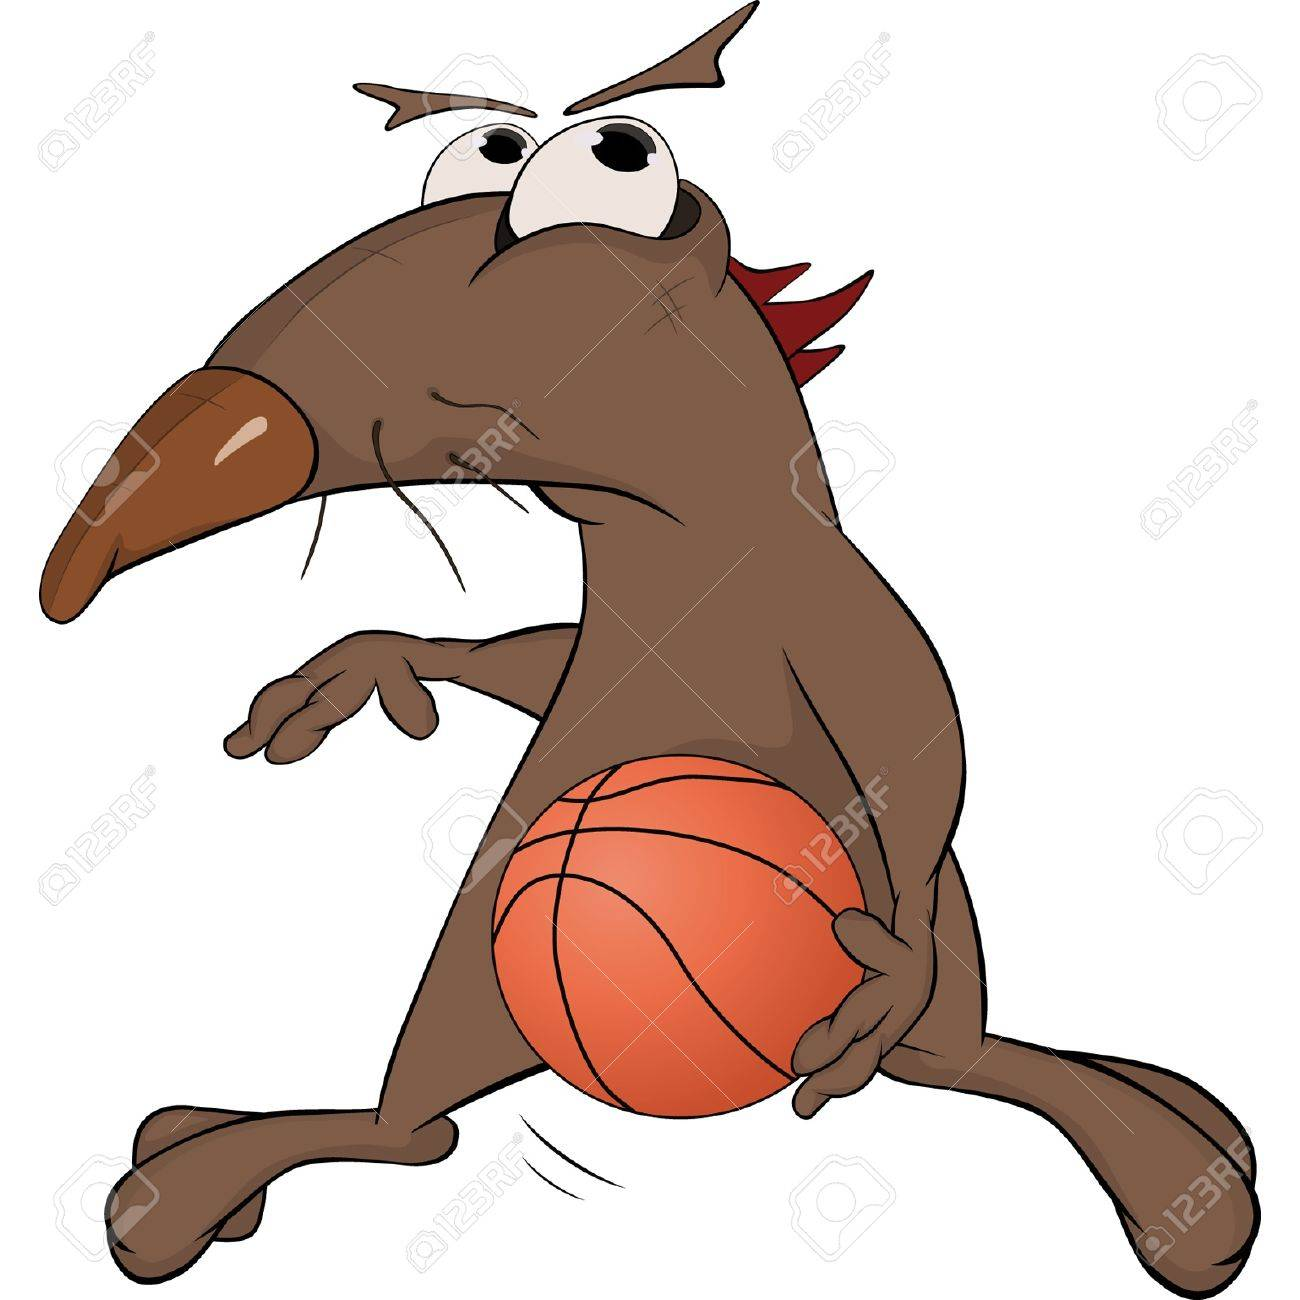 Dog the basketball player. Cartoon Stock Vector - 13789065